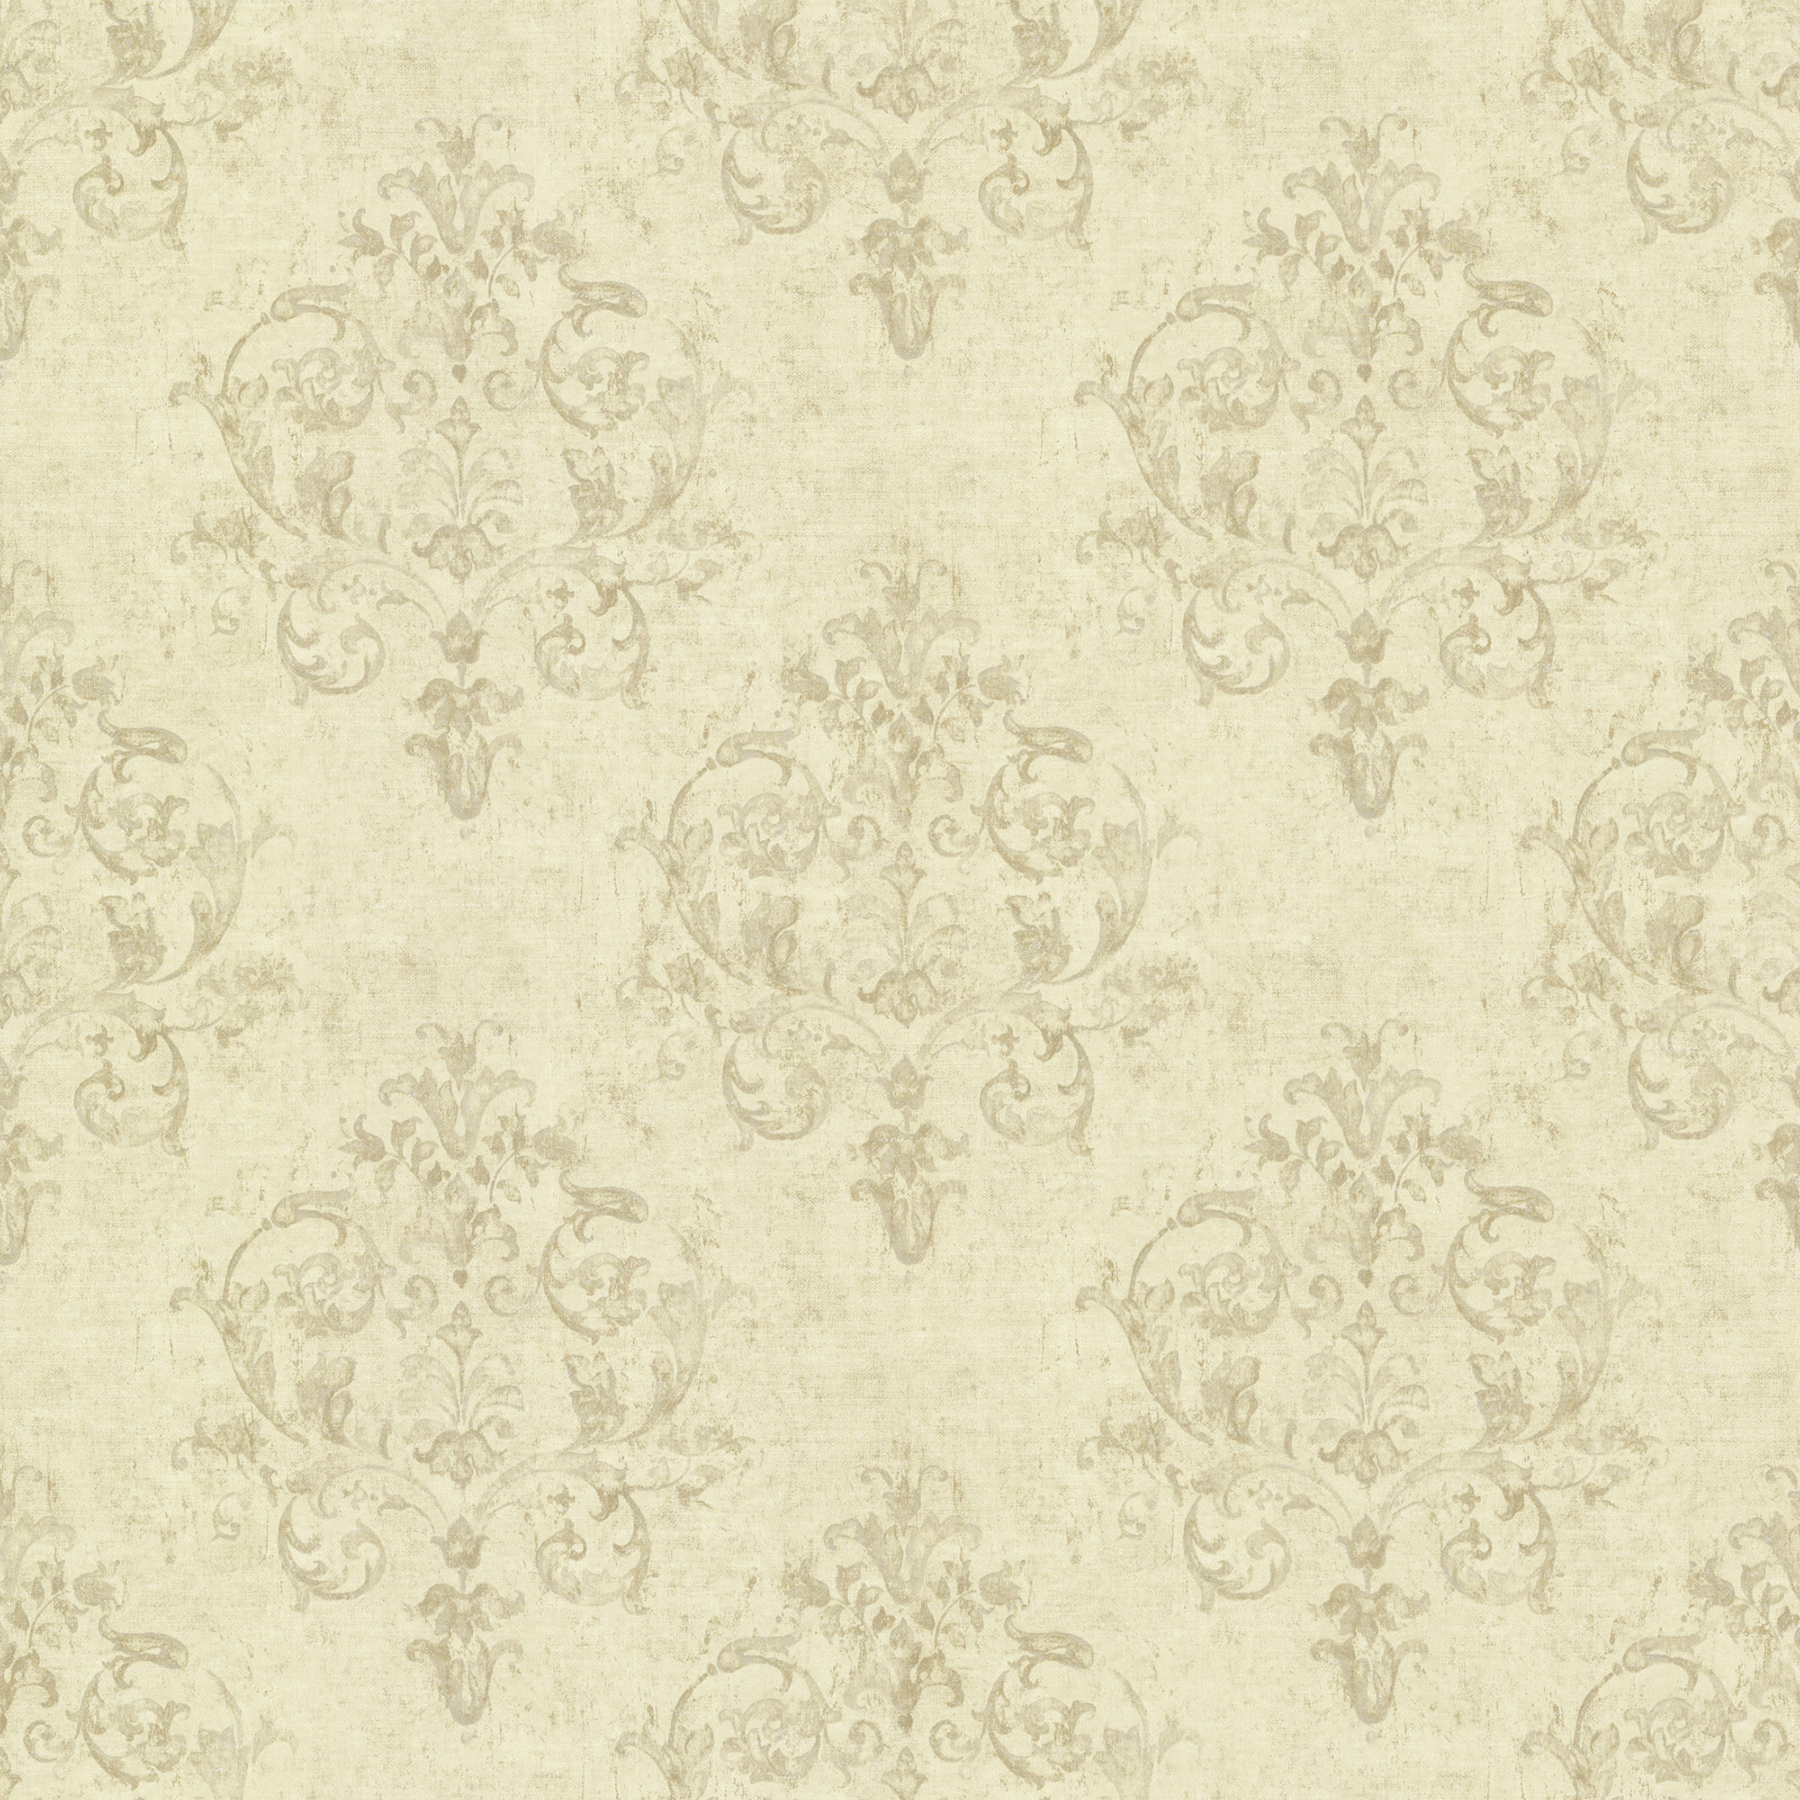 Picture of Arronsburg Wheat Damask Wallpaper